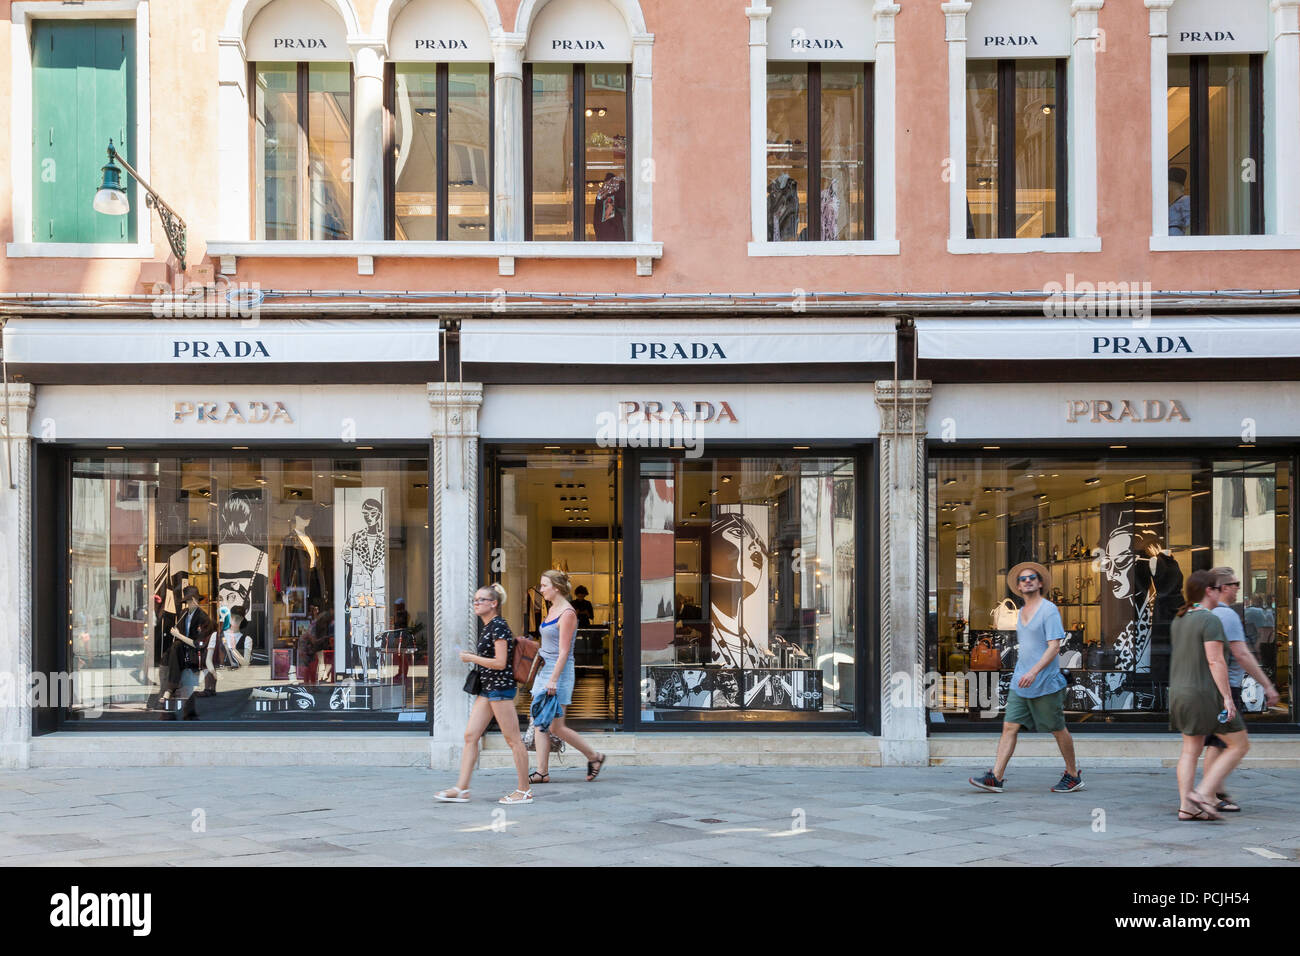 Fashion Outlet Stock Photos & Fashion Outlet Stock Images - Alamy